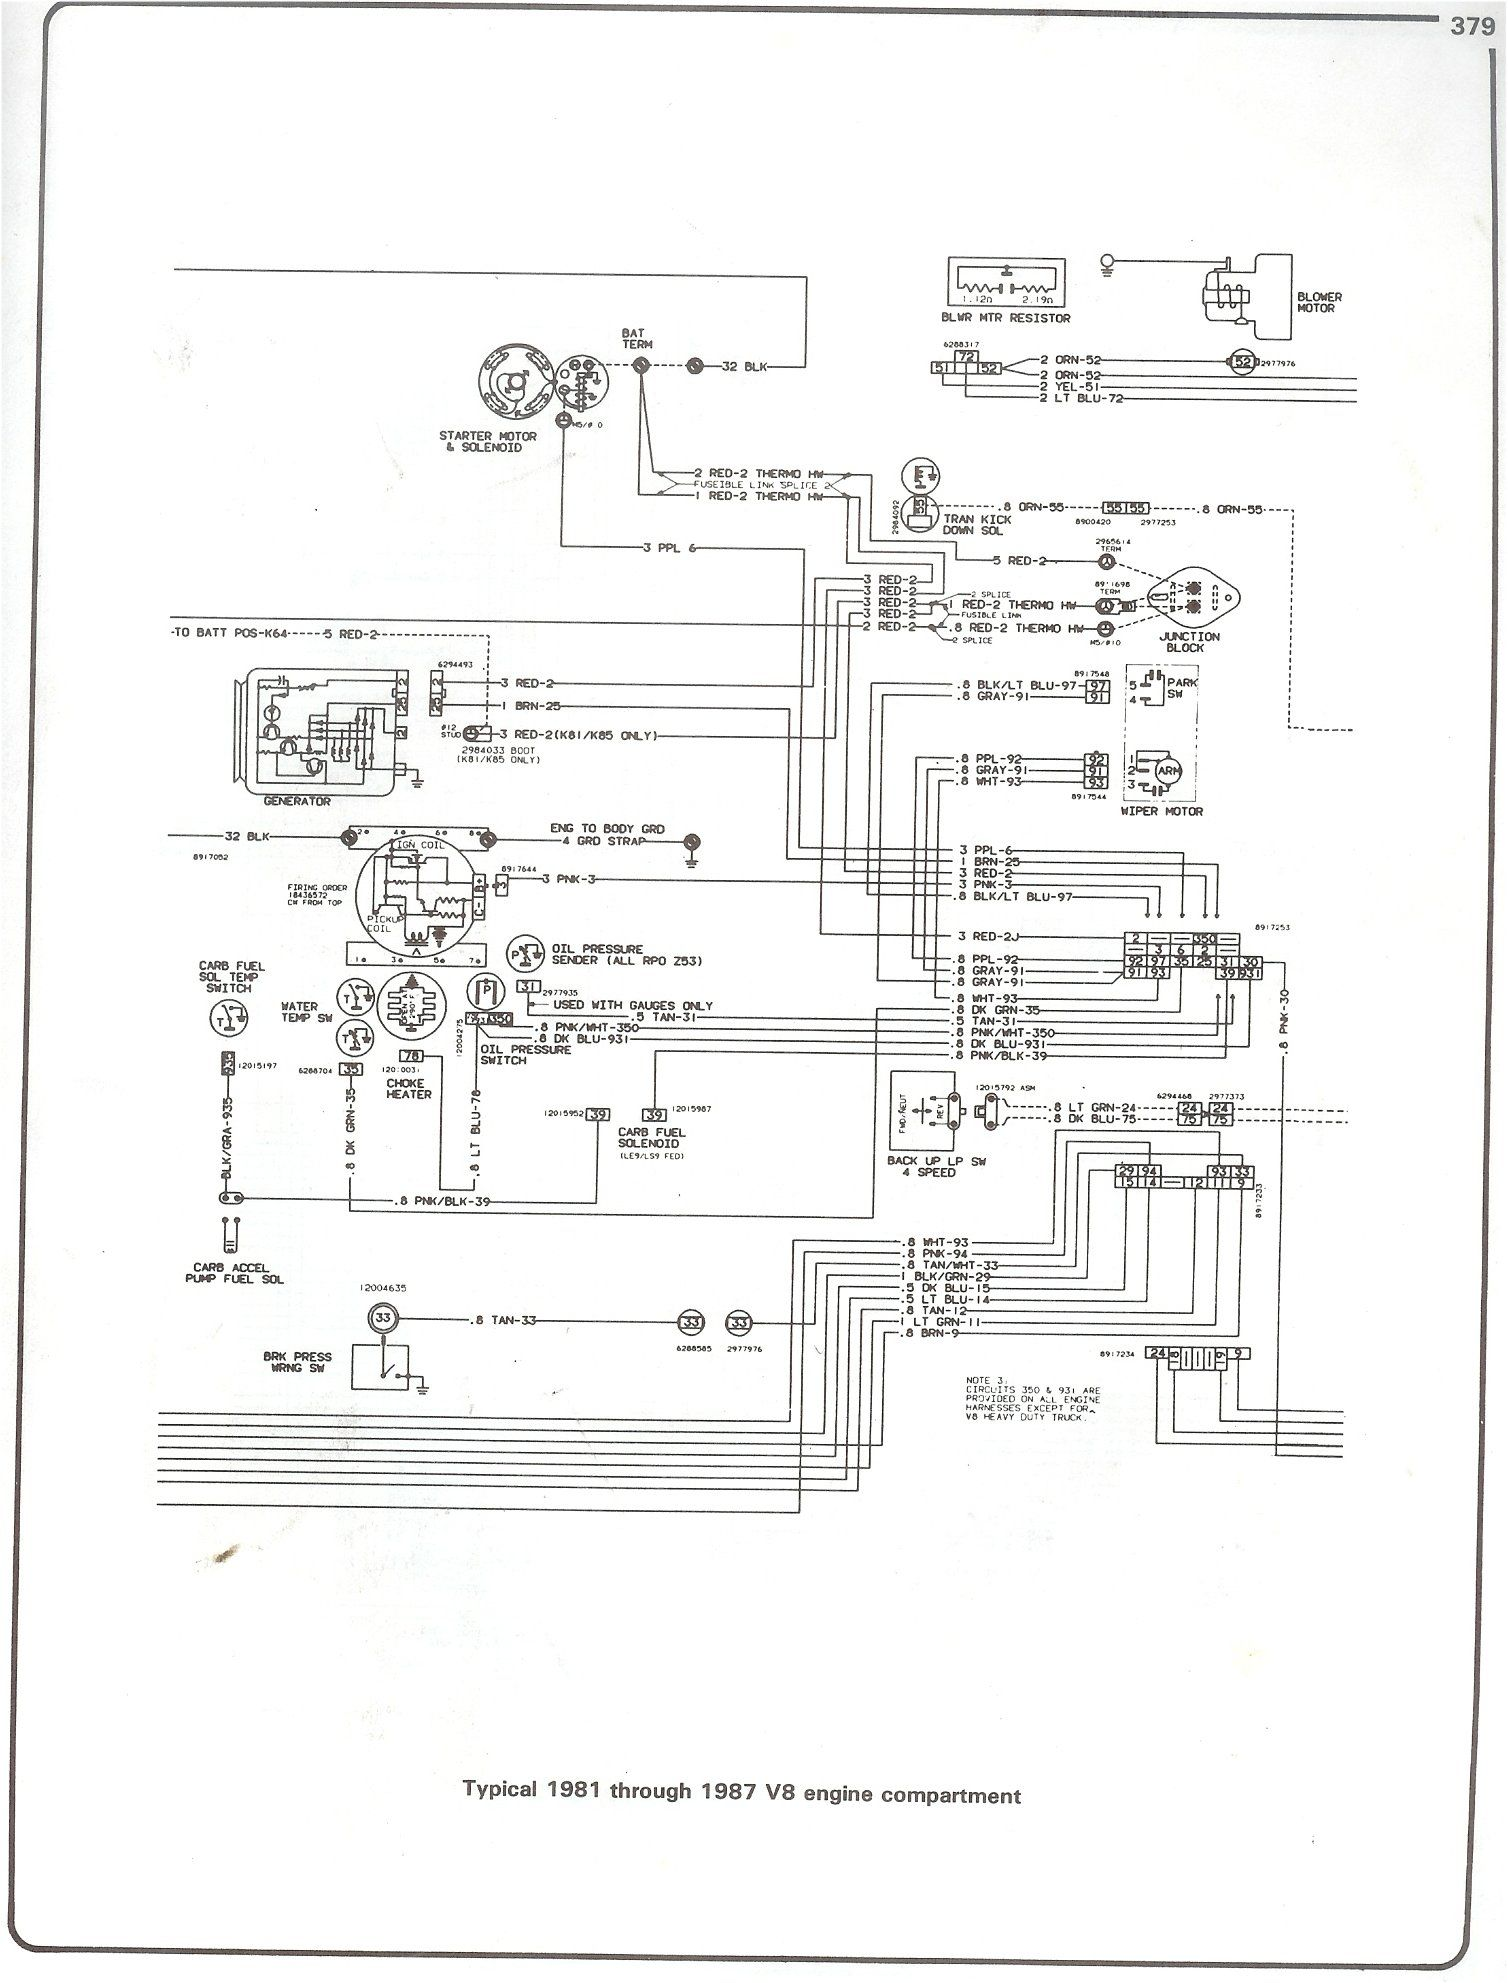 hight resolution of 1987 chevy c10 fuse diagram wiring diagrams bib 87 chevy silverado fuse box diagram 1987 chevy